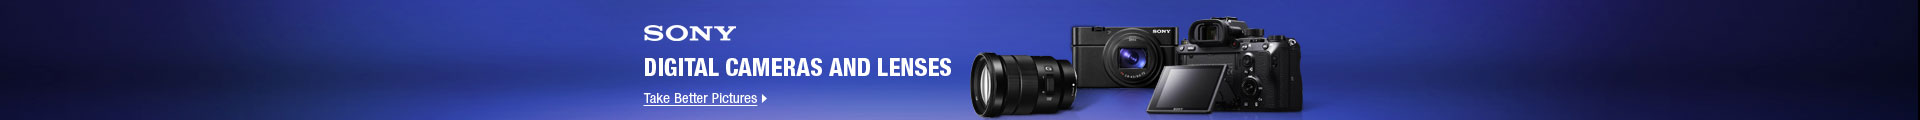 SONY Digital Cameras and Lenses